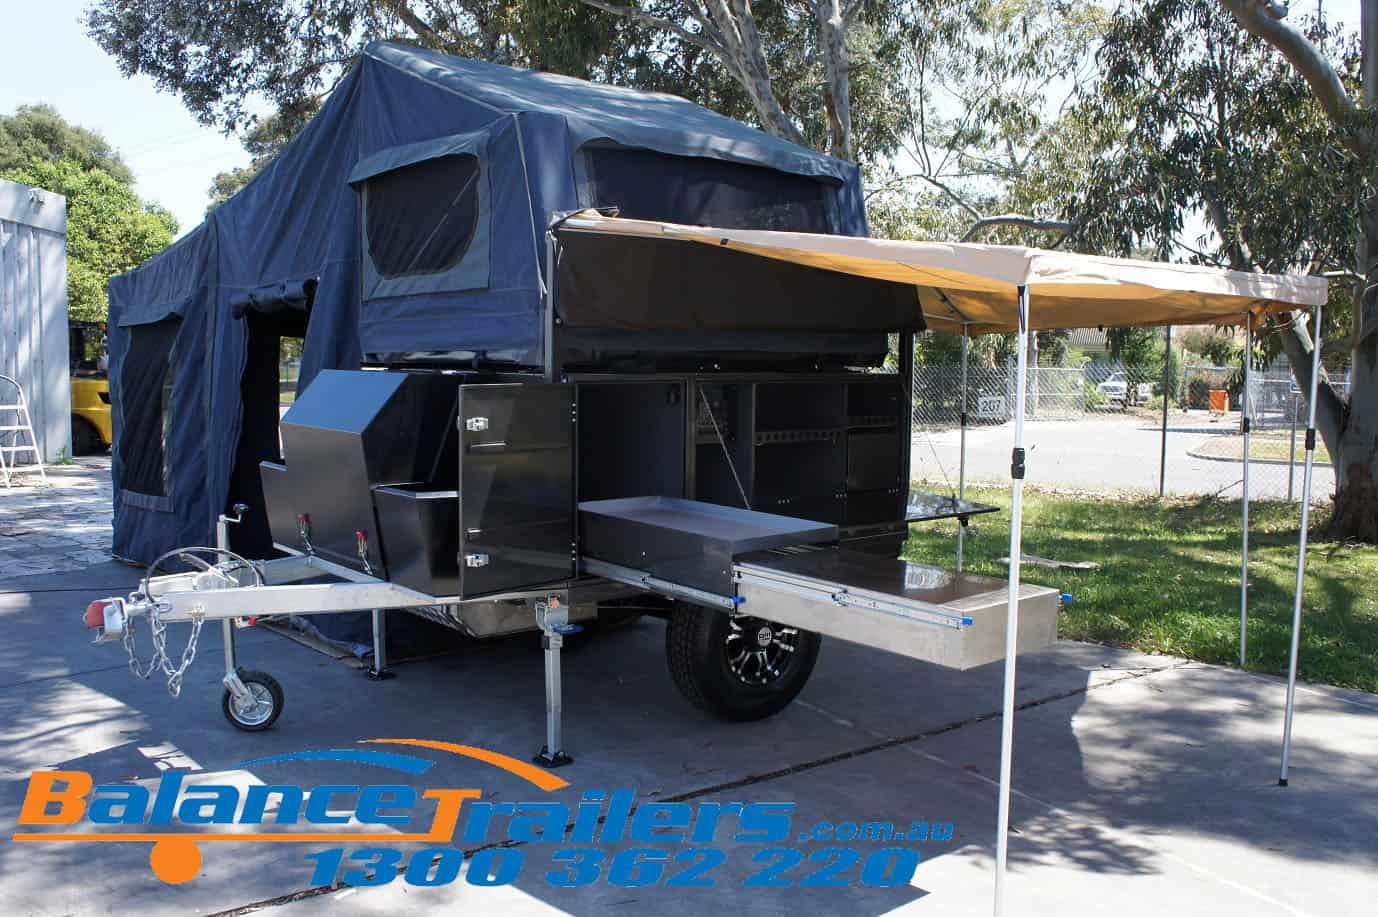 BT02SF Soft Floor Camper Trailer Image 21